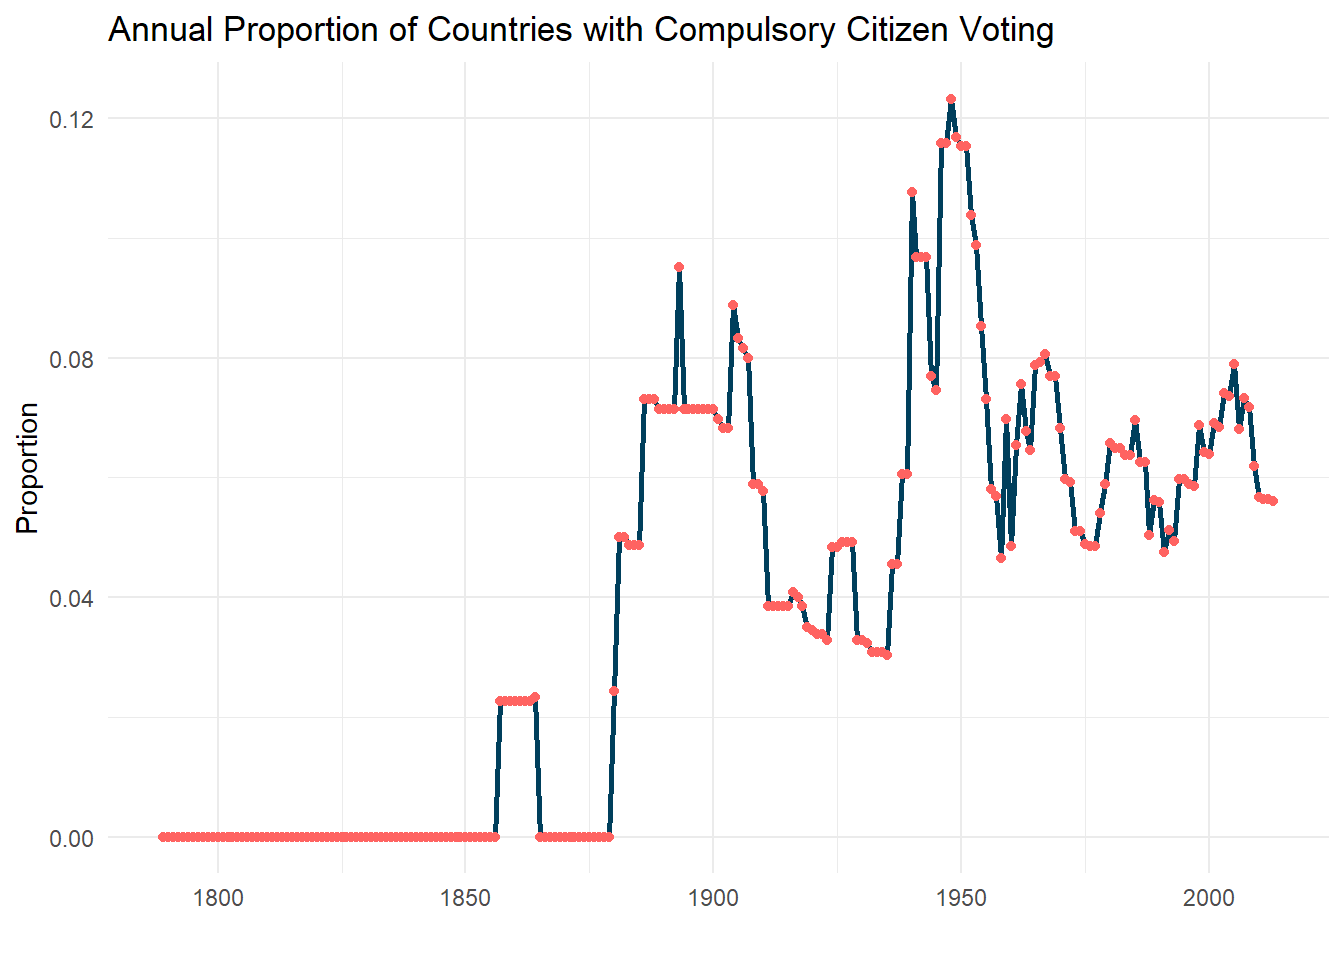 Sample data from Comparative Constitutions Project's Characteristics of National Constitutions V2.0. depicting annual proportion of global countries with compulsory citizen voting.